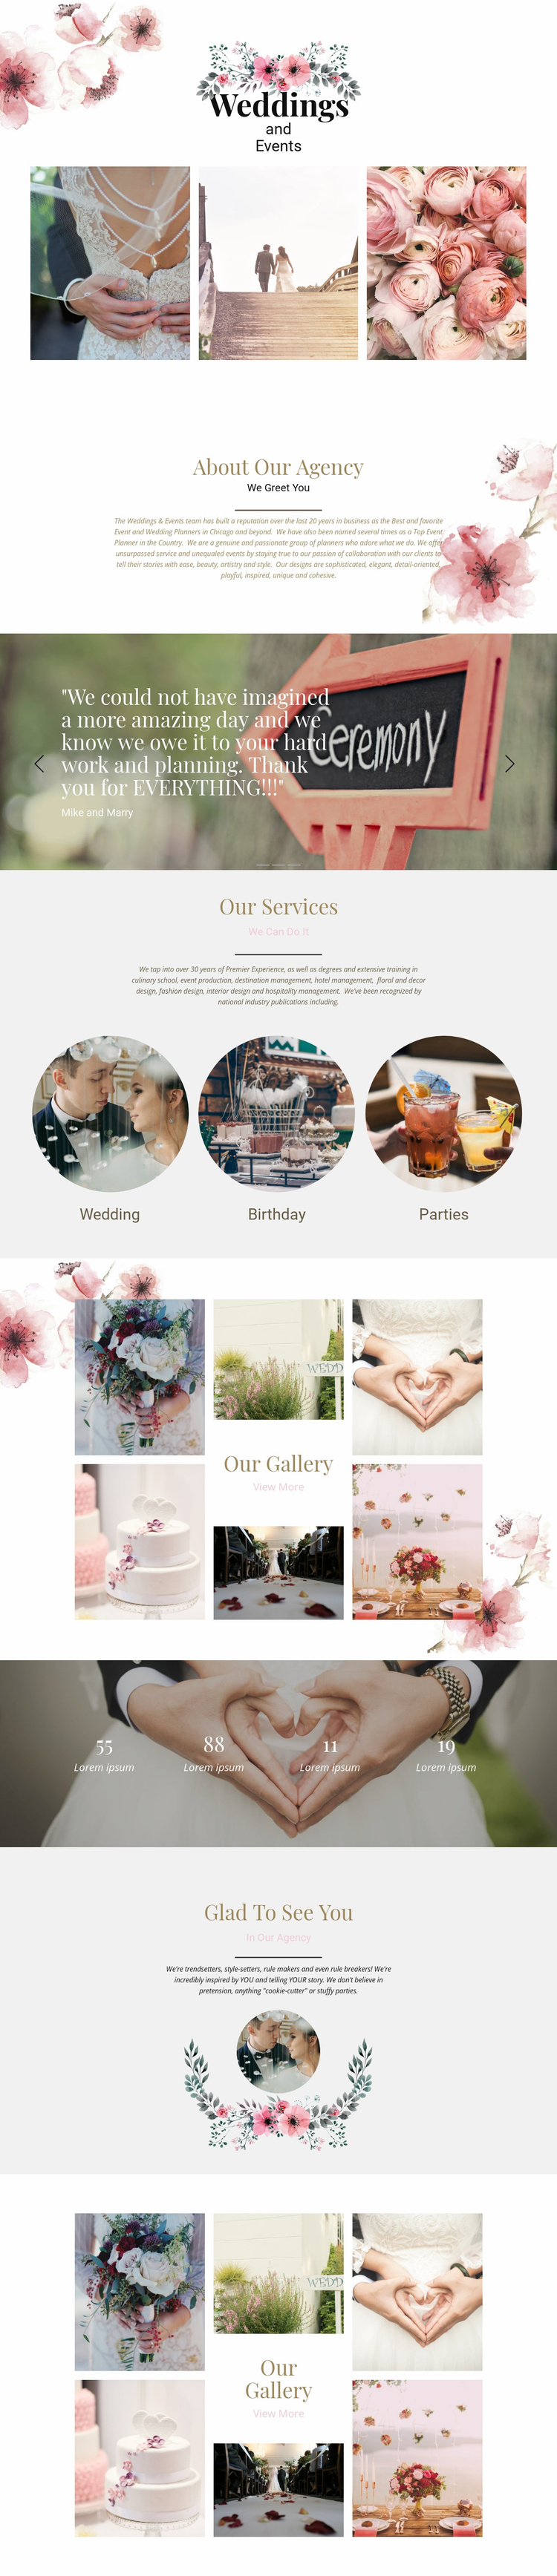 Moments of wedding Landing Page